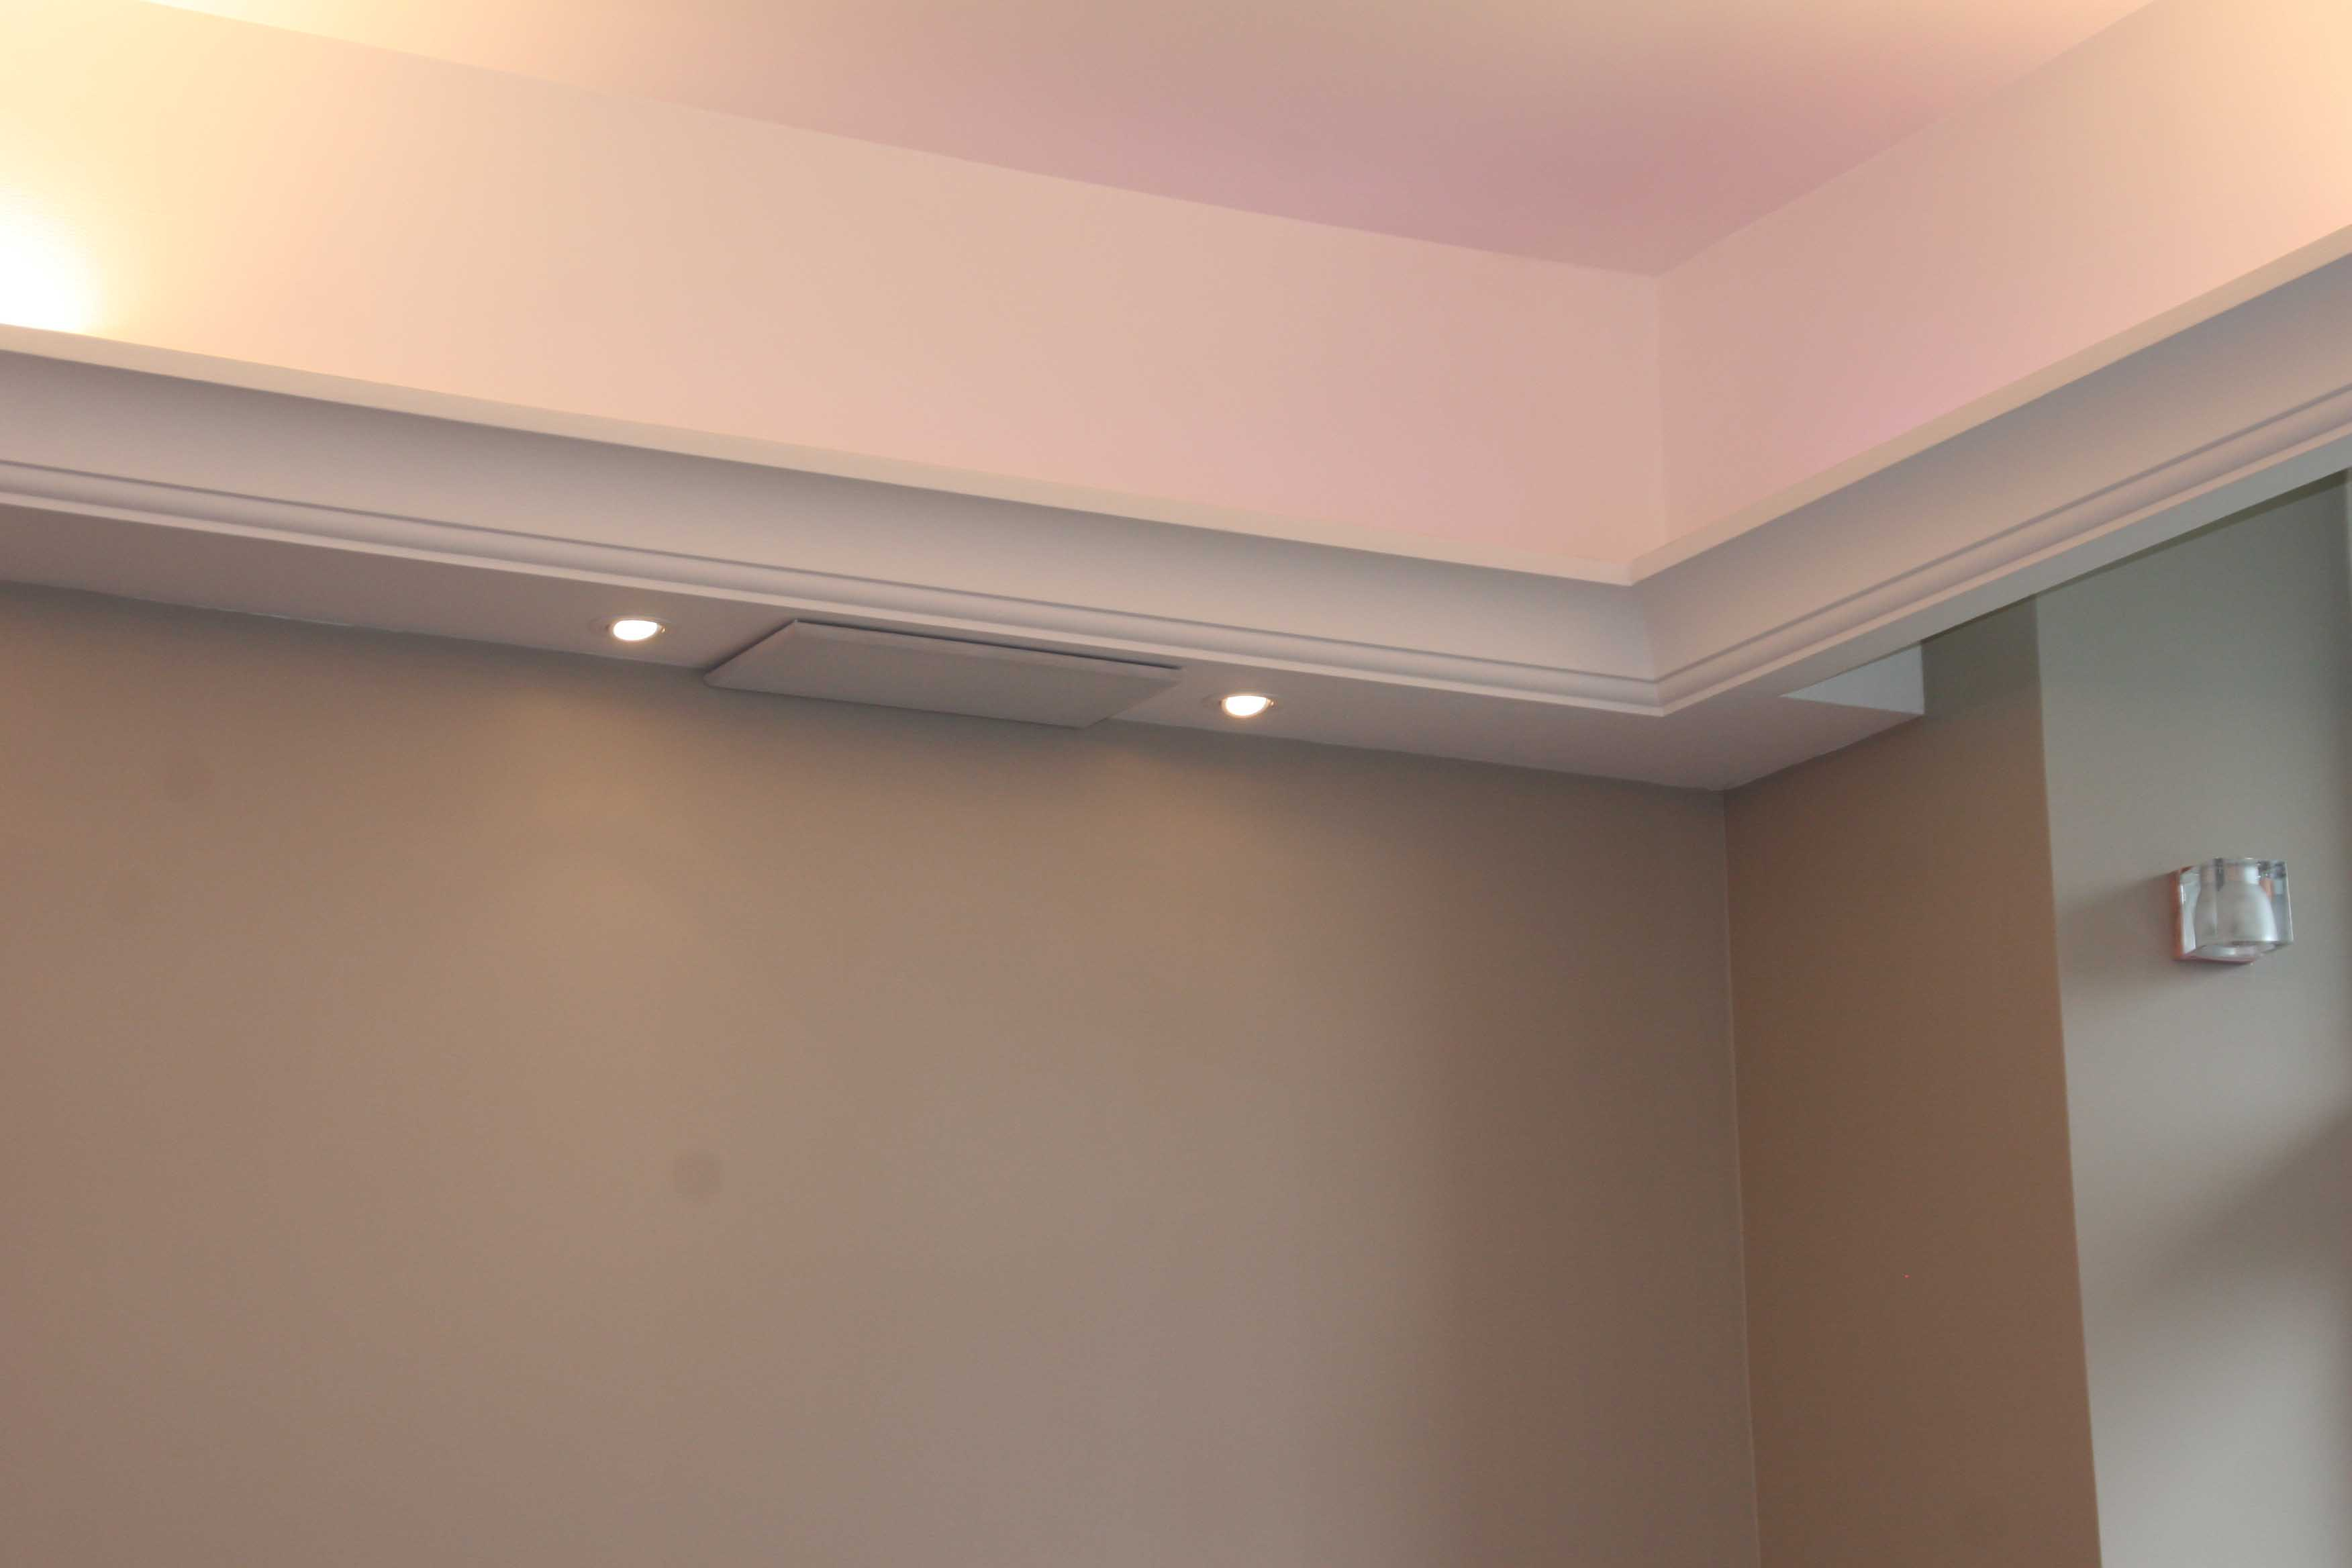 D coration plafond l art de mettre en valeur son - Appartement au design traditionnel moderne colore ...